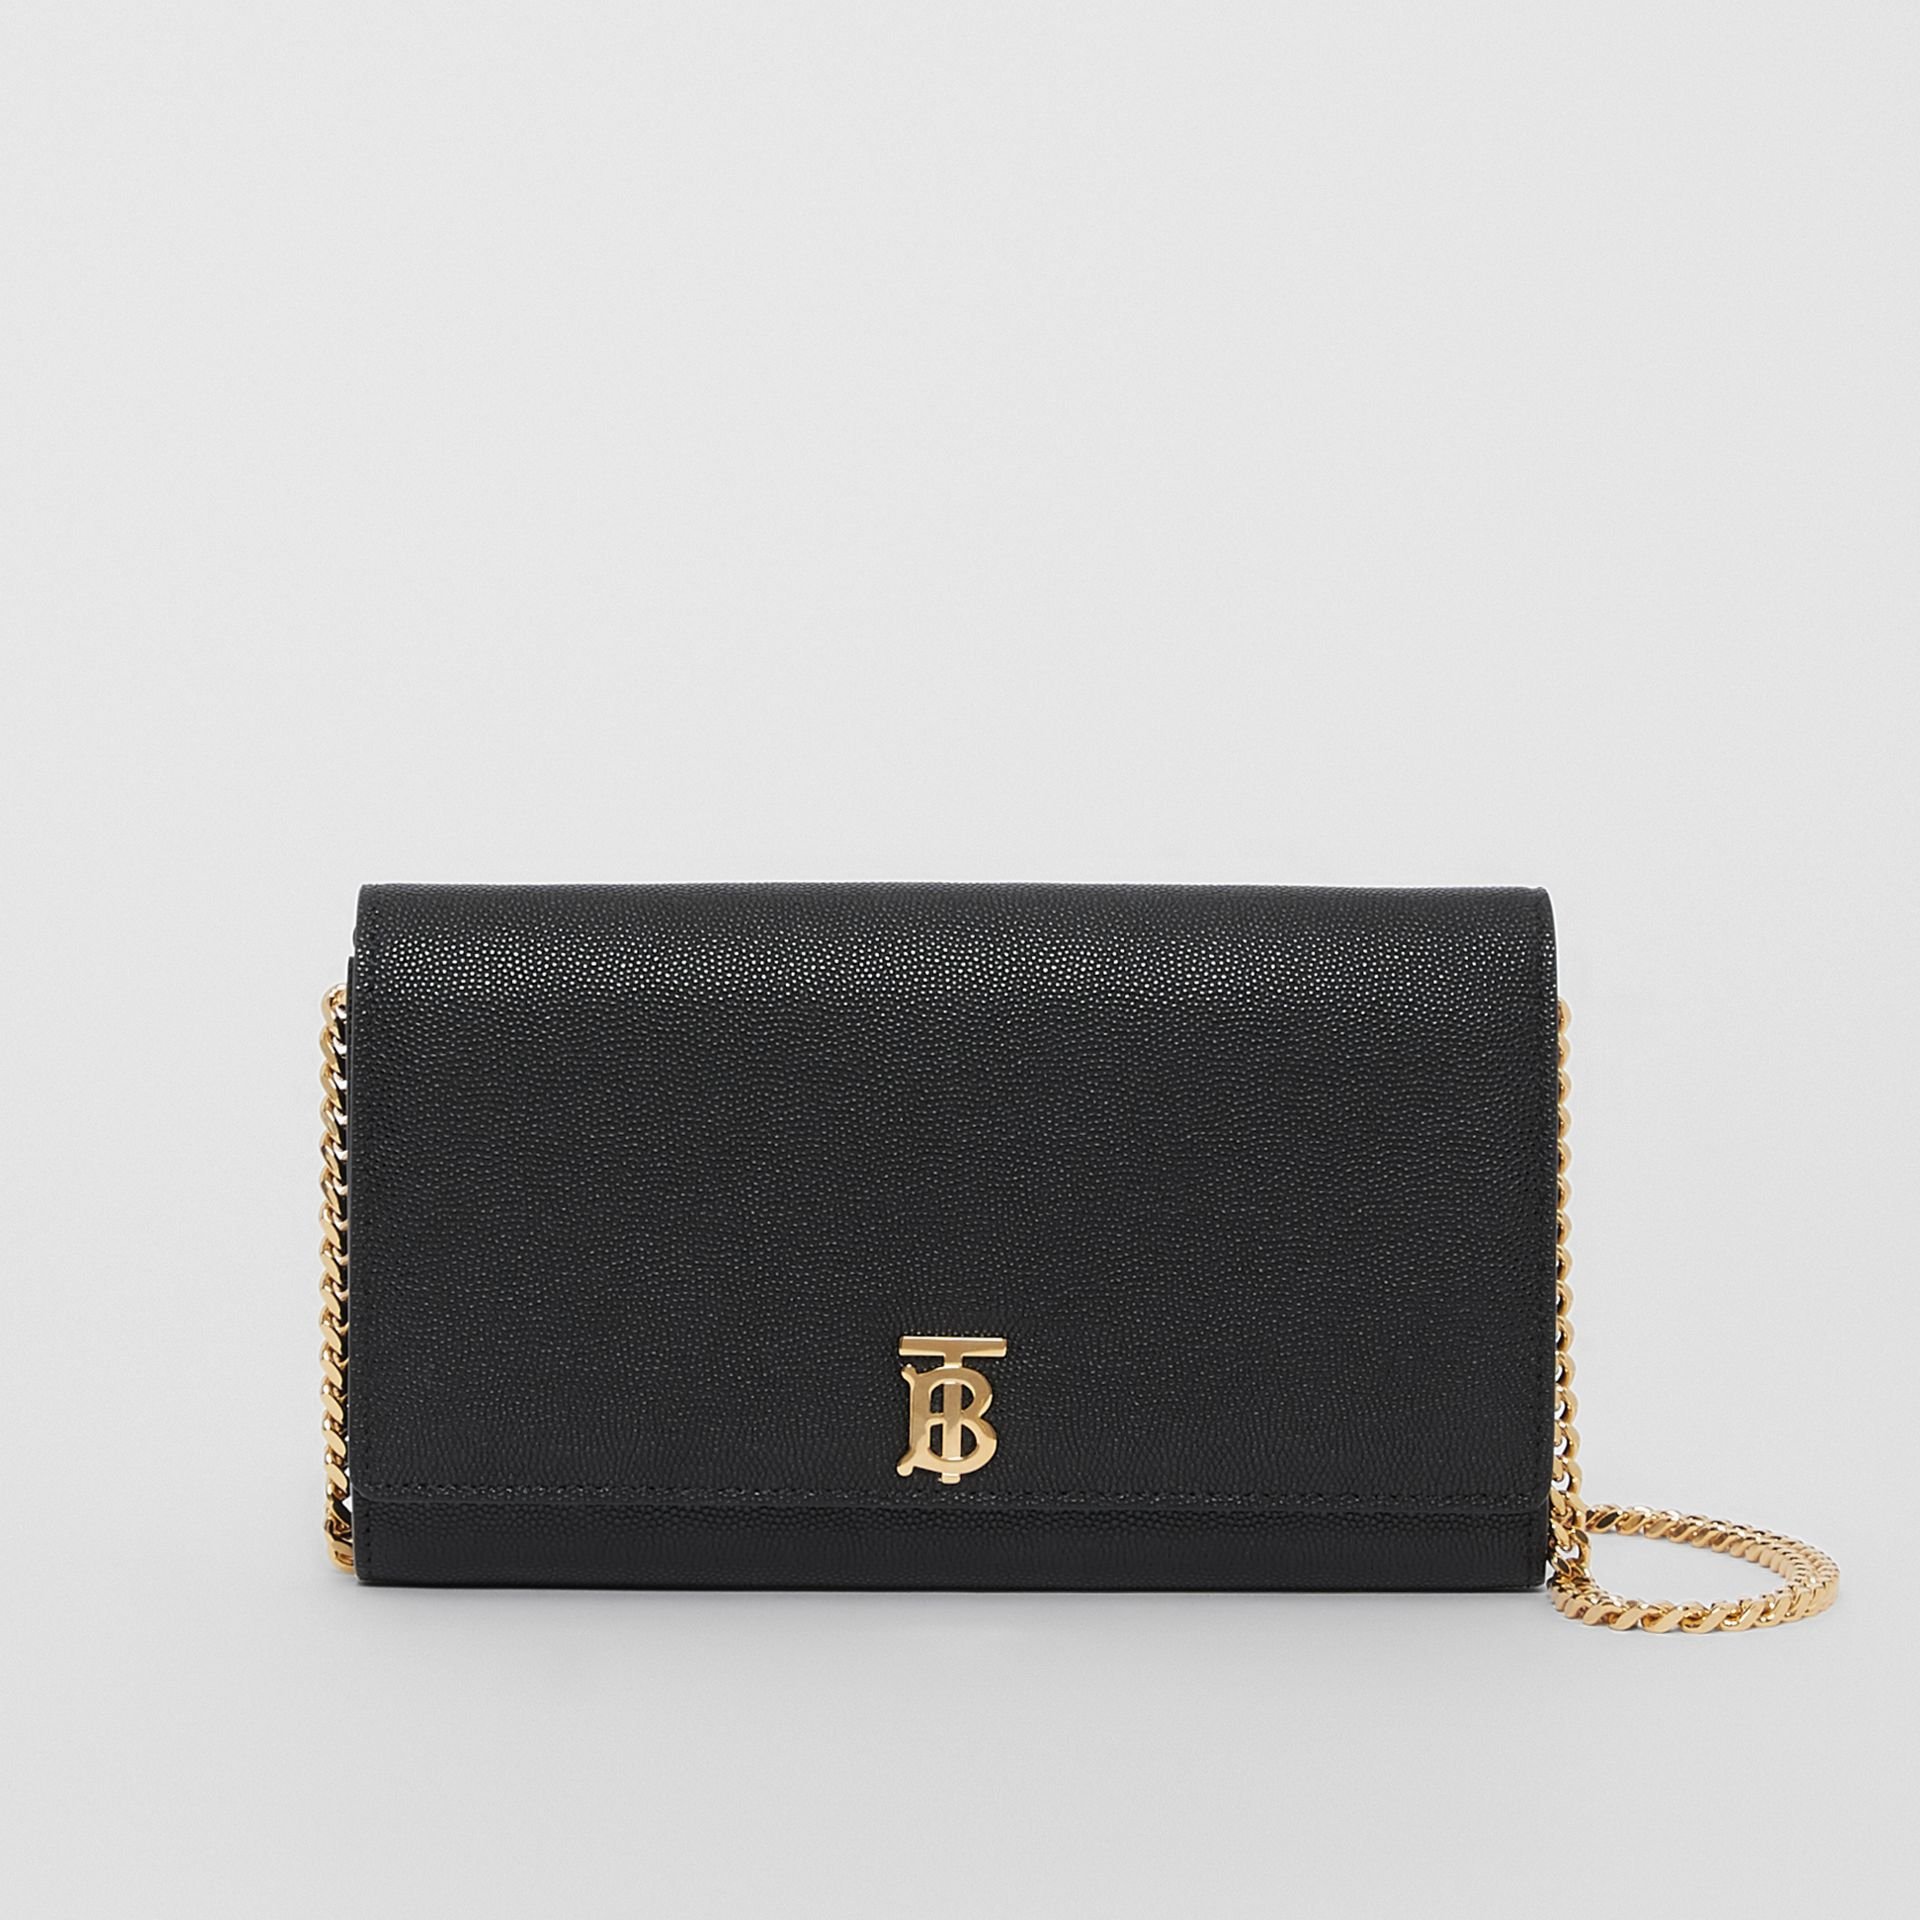 Monogram Motif Leather Wallet with Detachable Strap in Black - Women | Burberry - gallery image 0